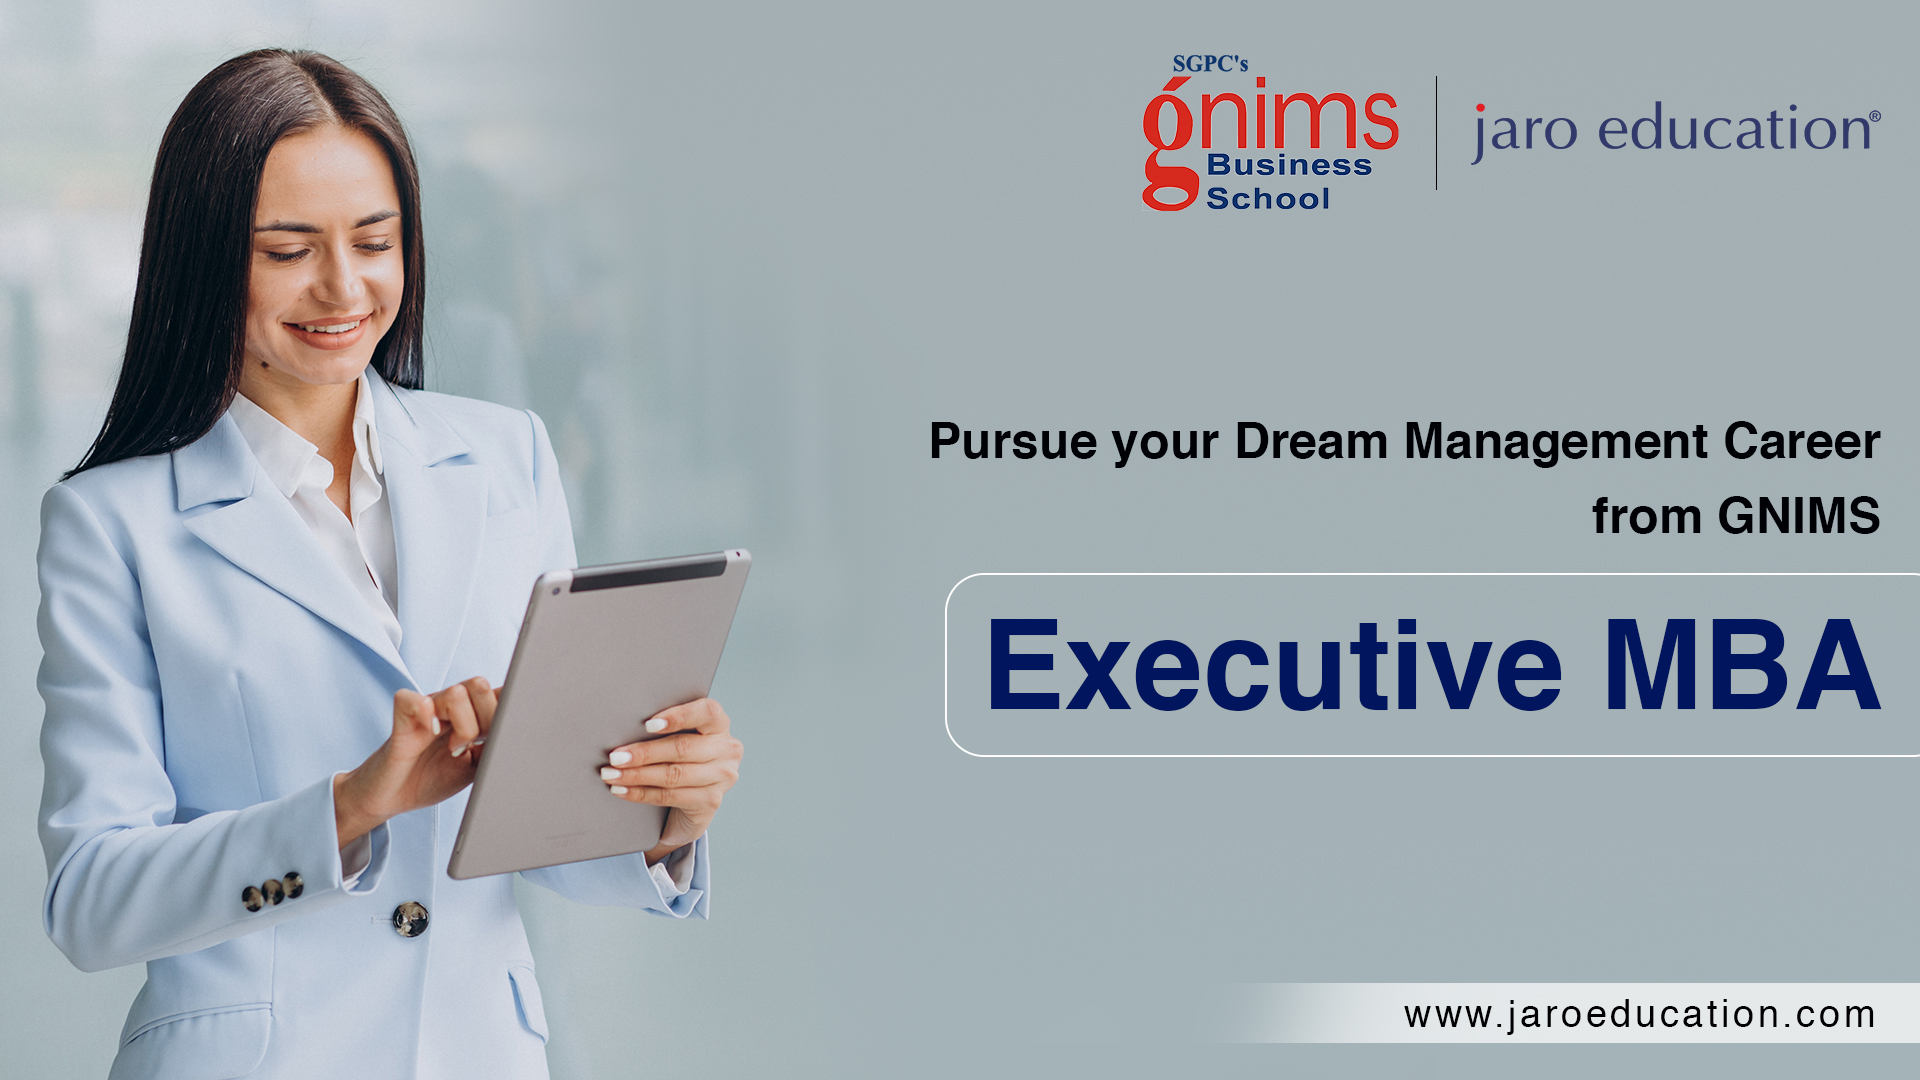 Executive MBA from GNIMS